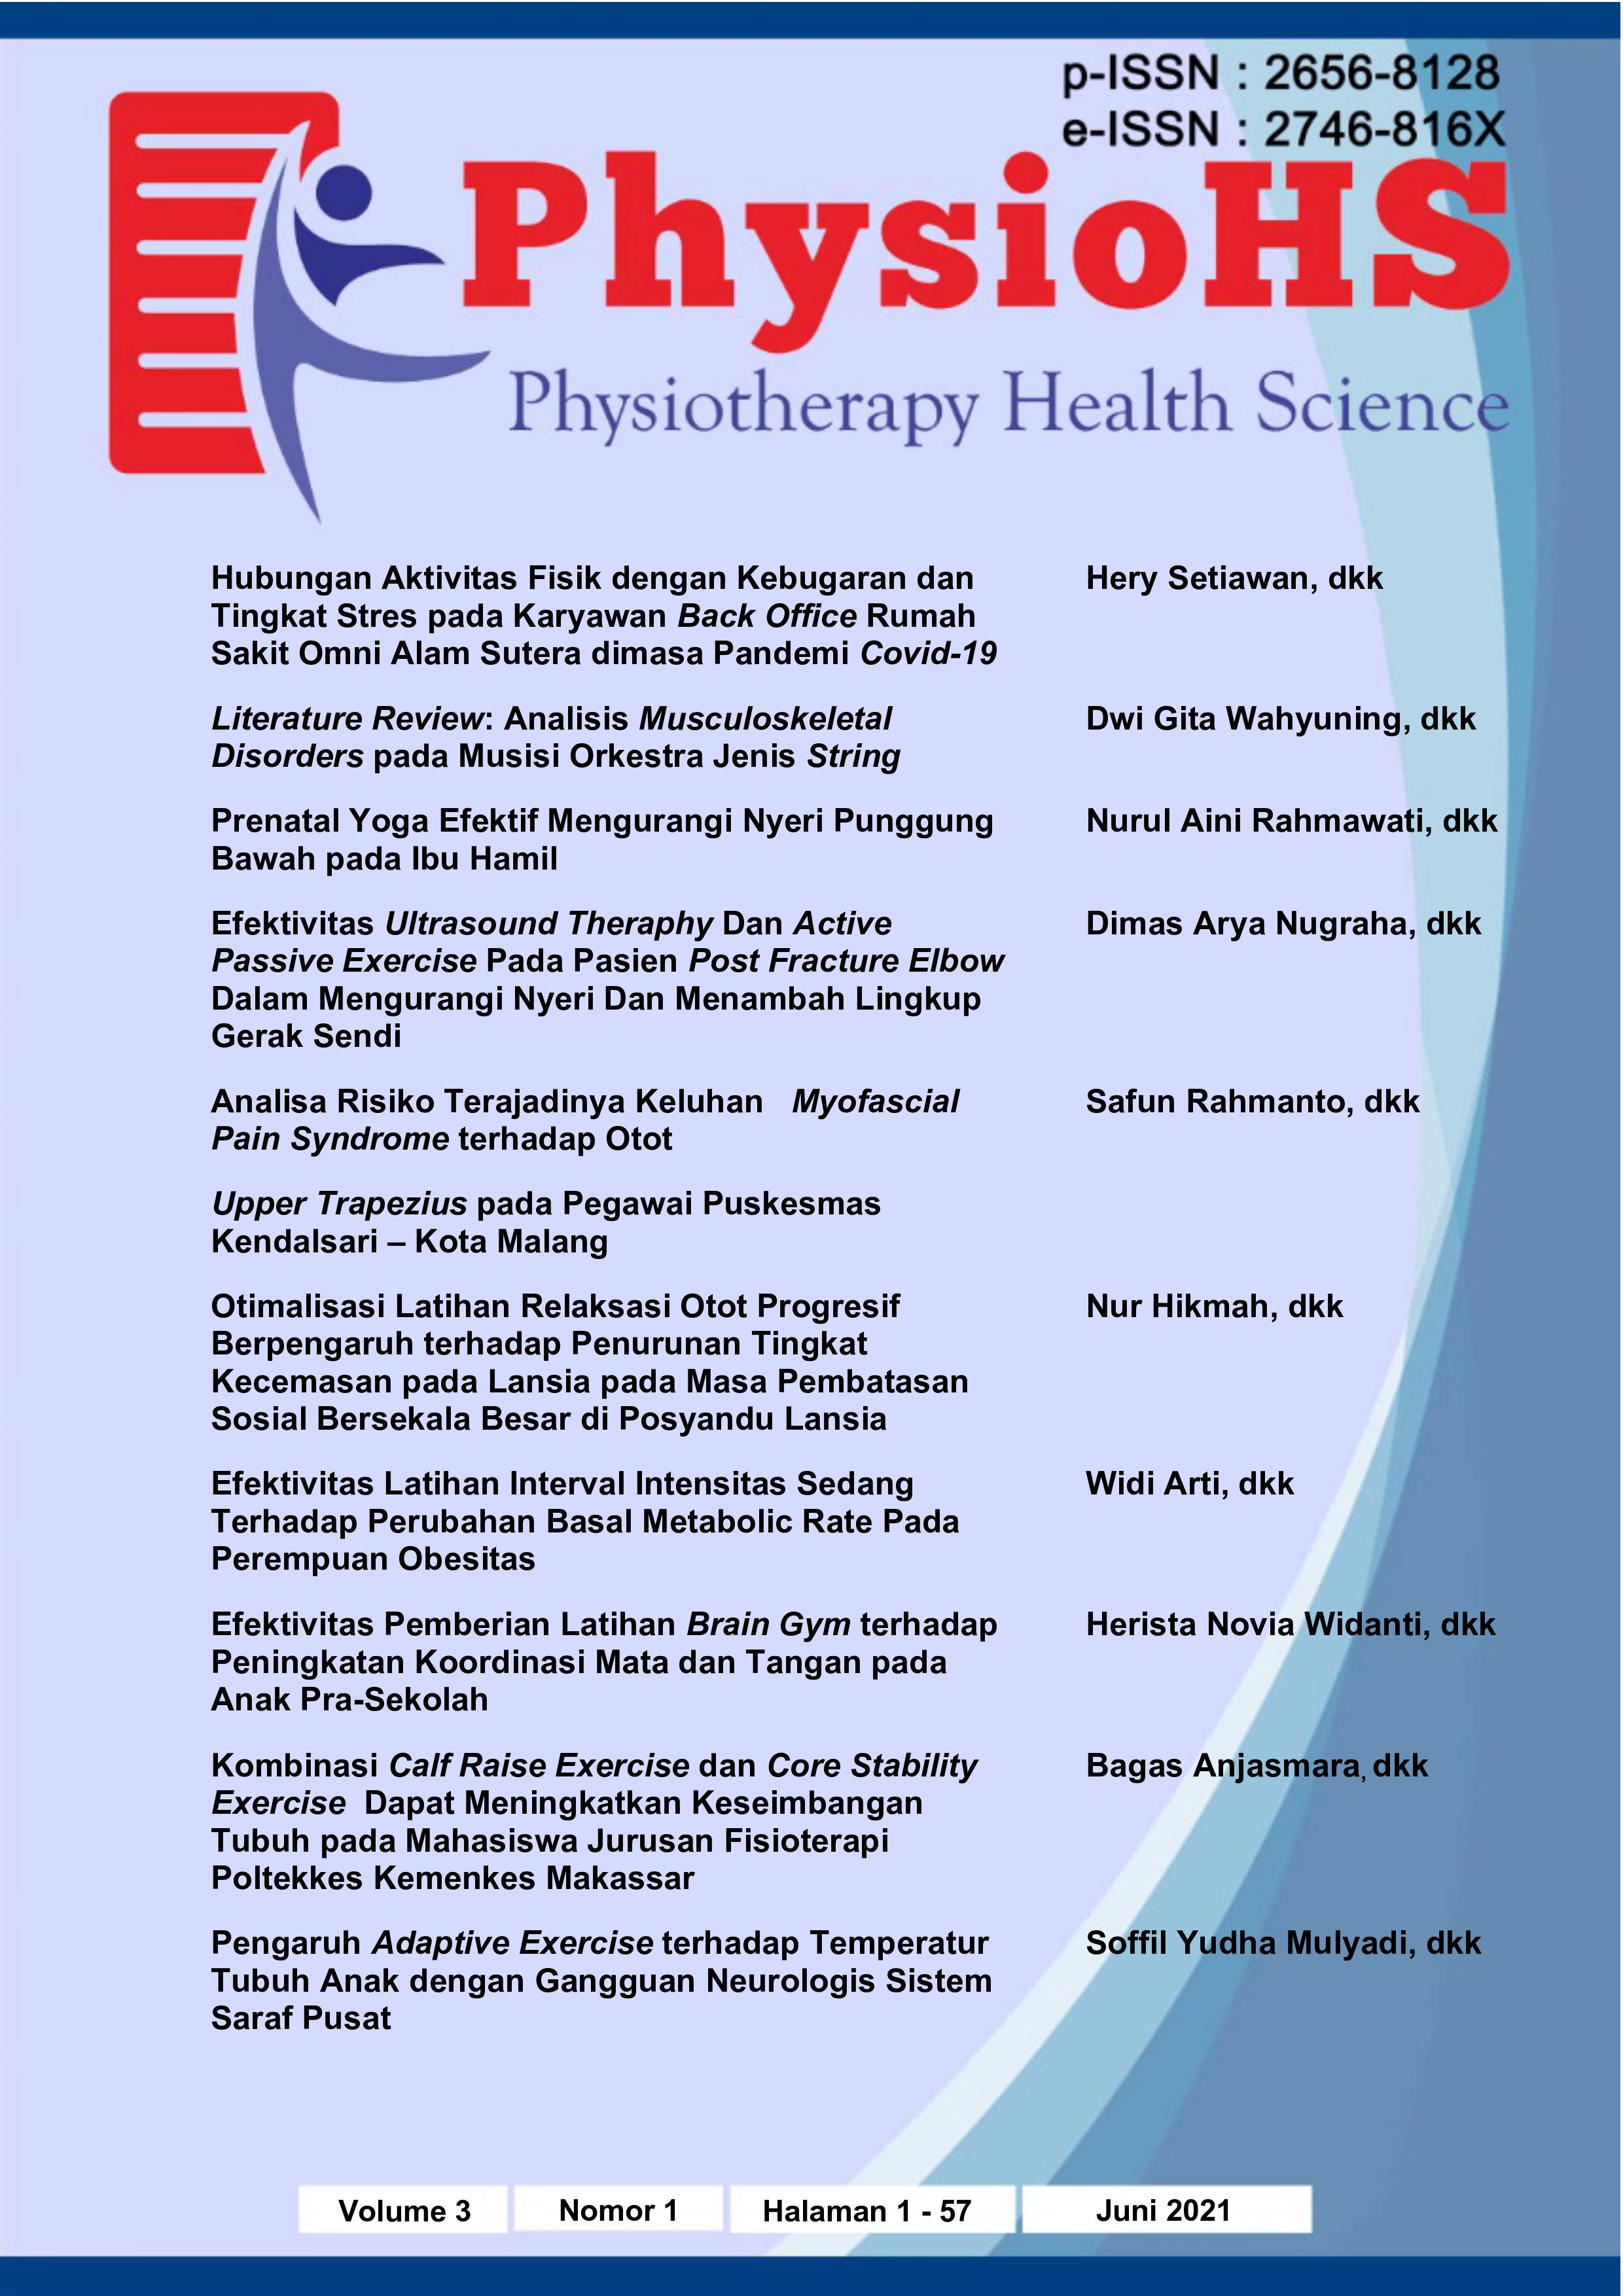 View Vol. 3 No. 1 (2021): Physiotherapy Health Science (PhysioHS) - Edisi Juni 2021